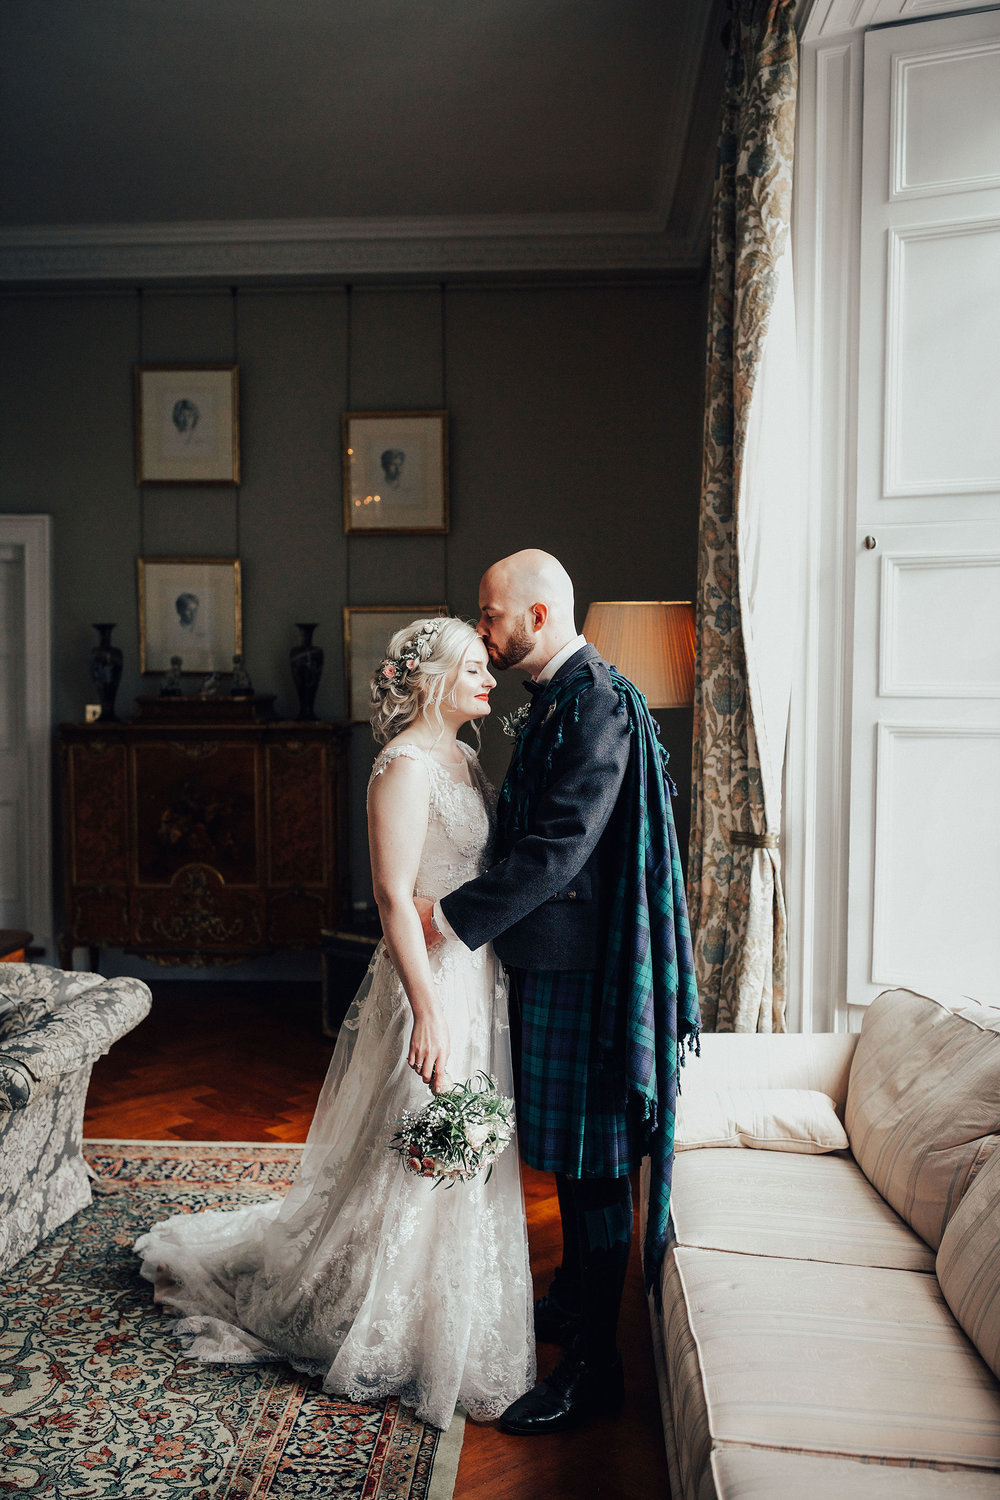 BOTURICH_CASTLE_WEDDING_PHOTOGRAPHER_PJ_PHILLIPS_PHOTOGRAPHY_99.jpg